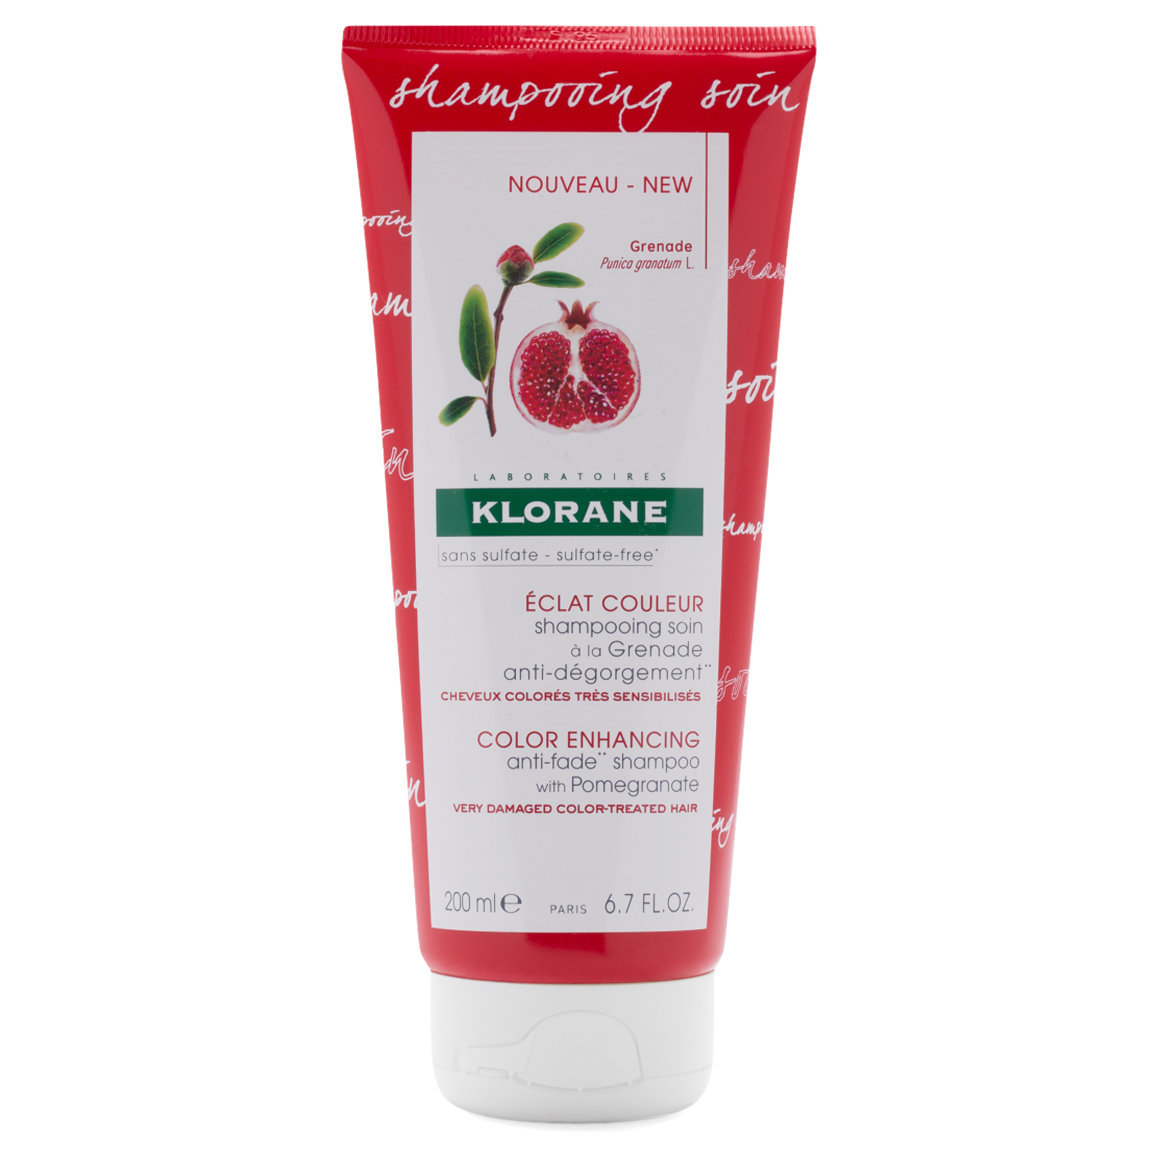 Klorane Anti-Fade Shampoo with Pomegranate product swatch.